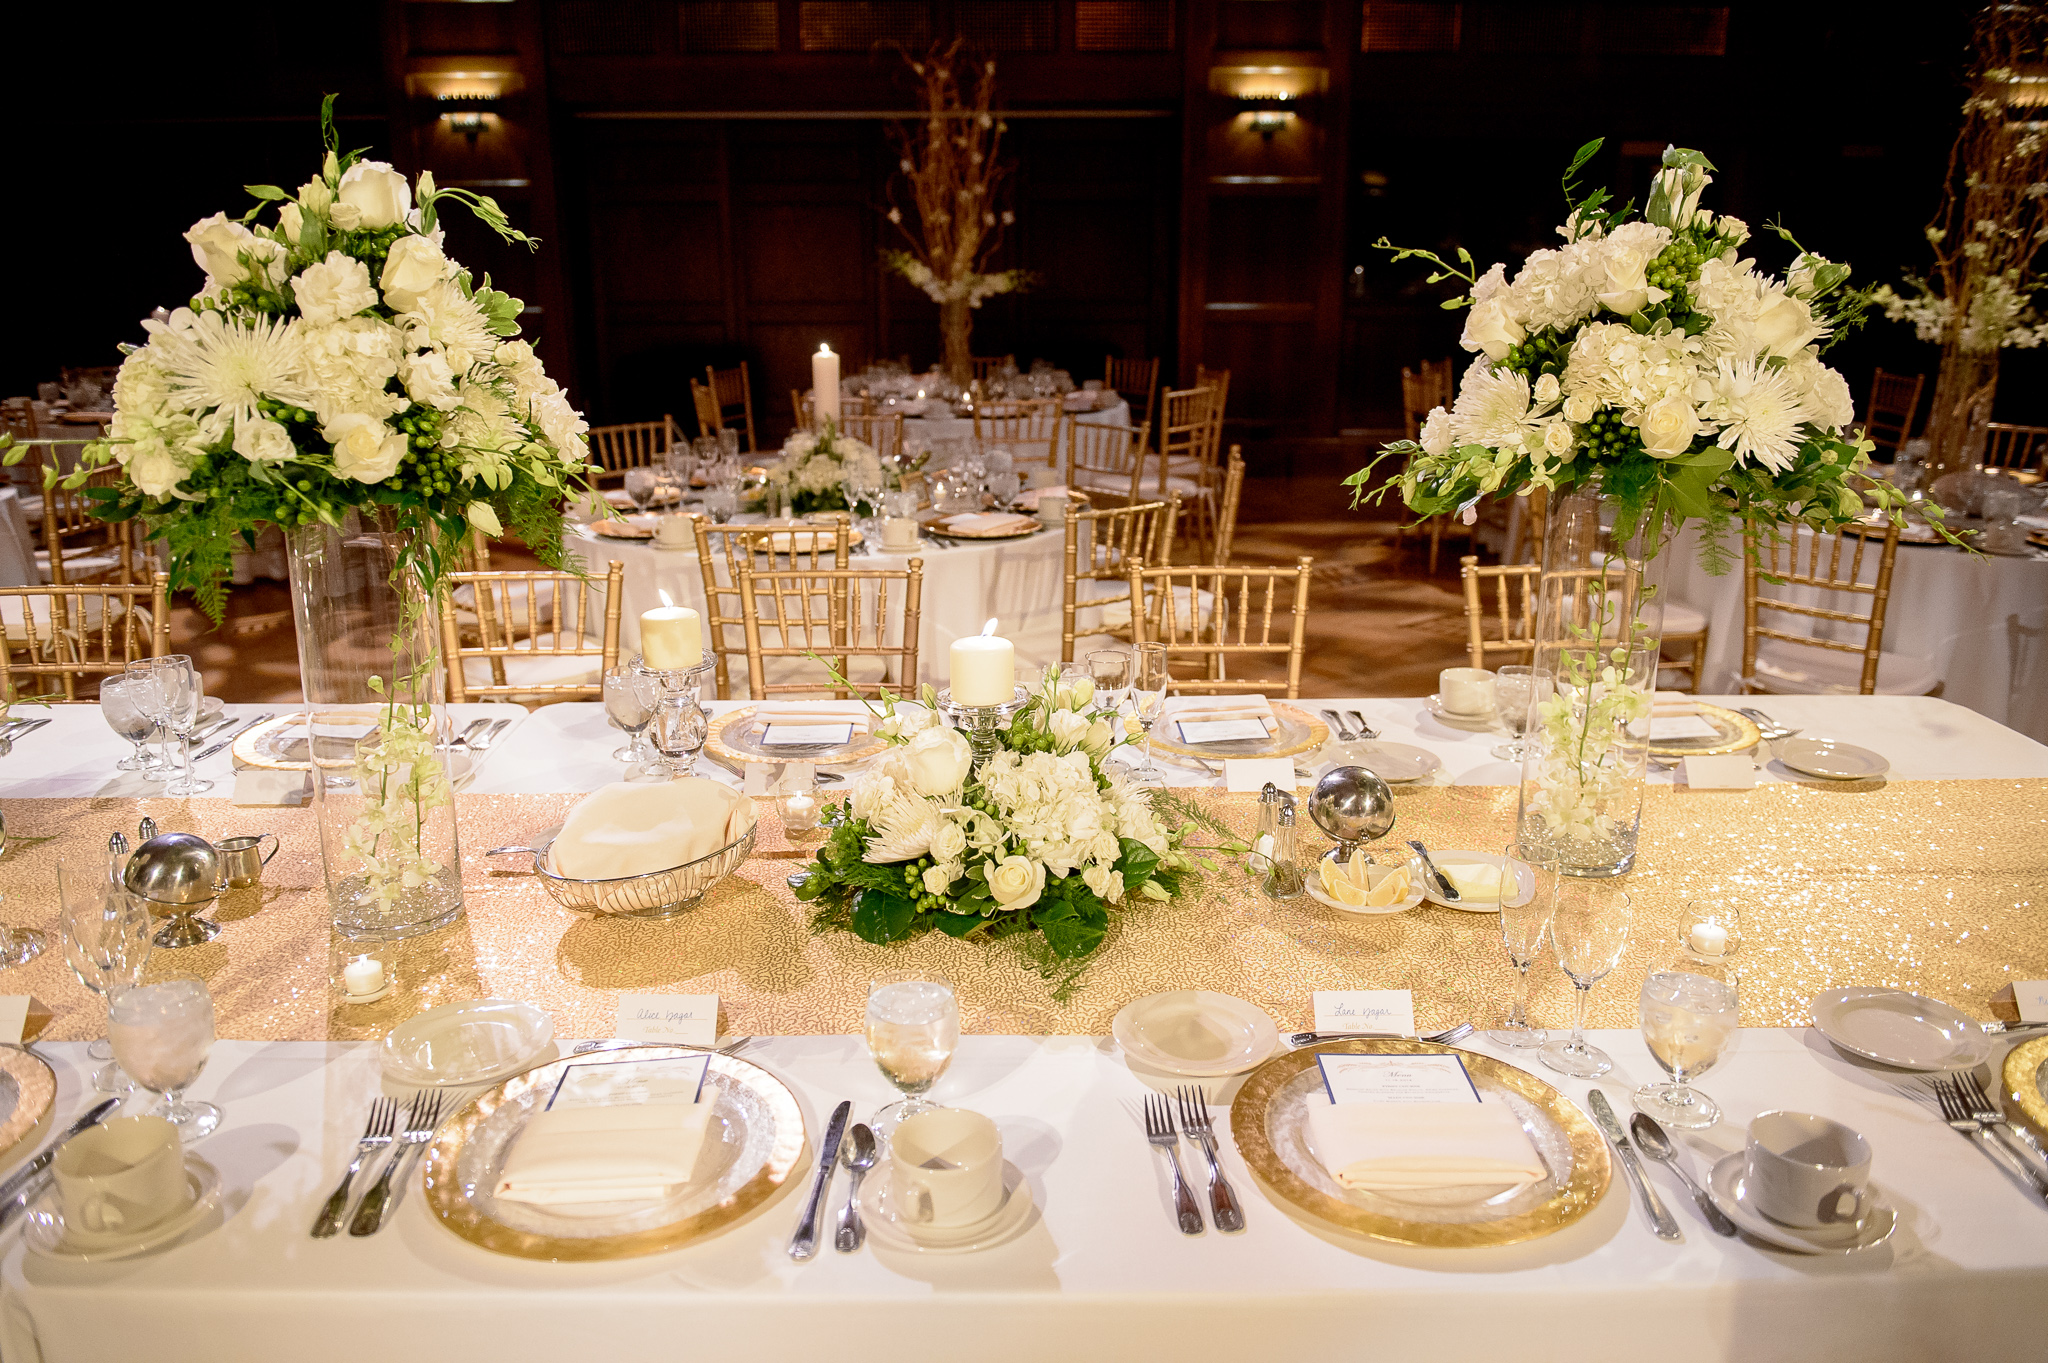 Weddings Event Planning Catering Indiana Memorial Union Indiana